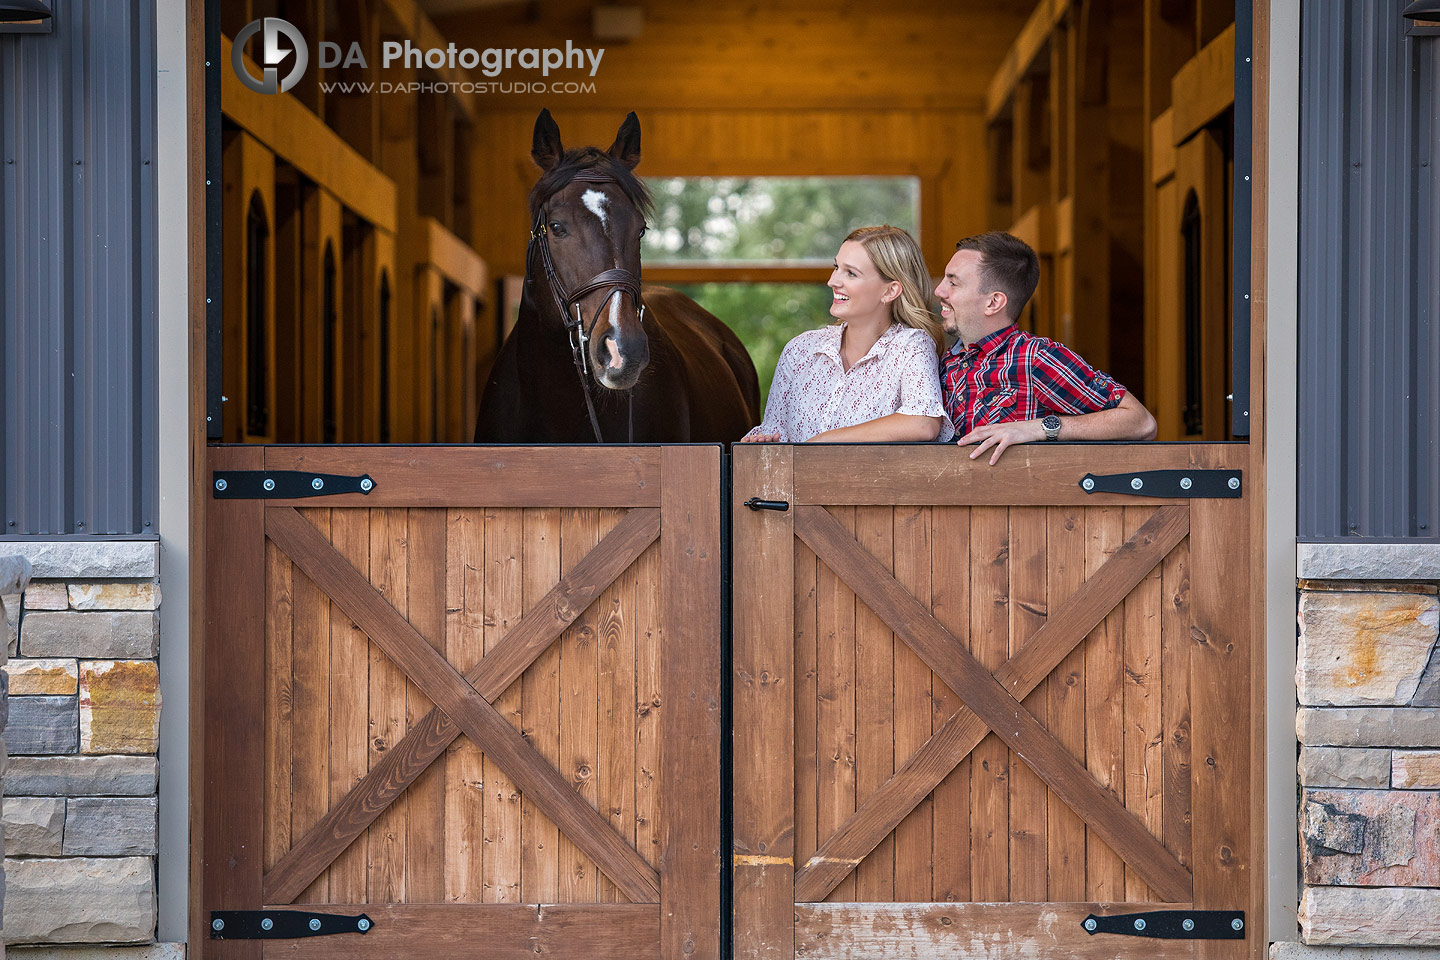 Horse Stable Engagement Photographer